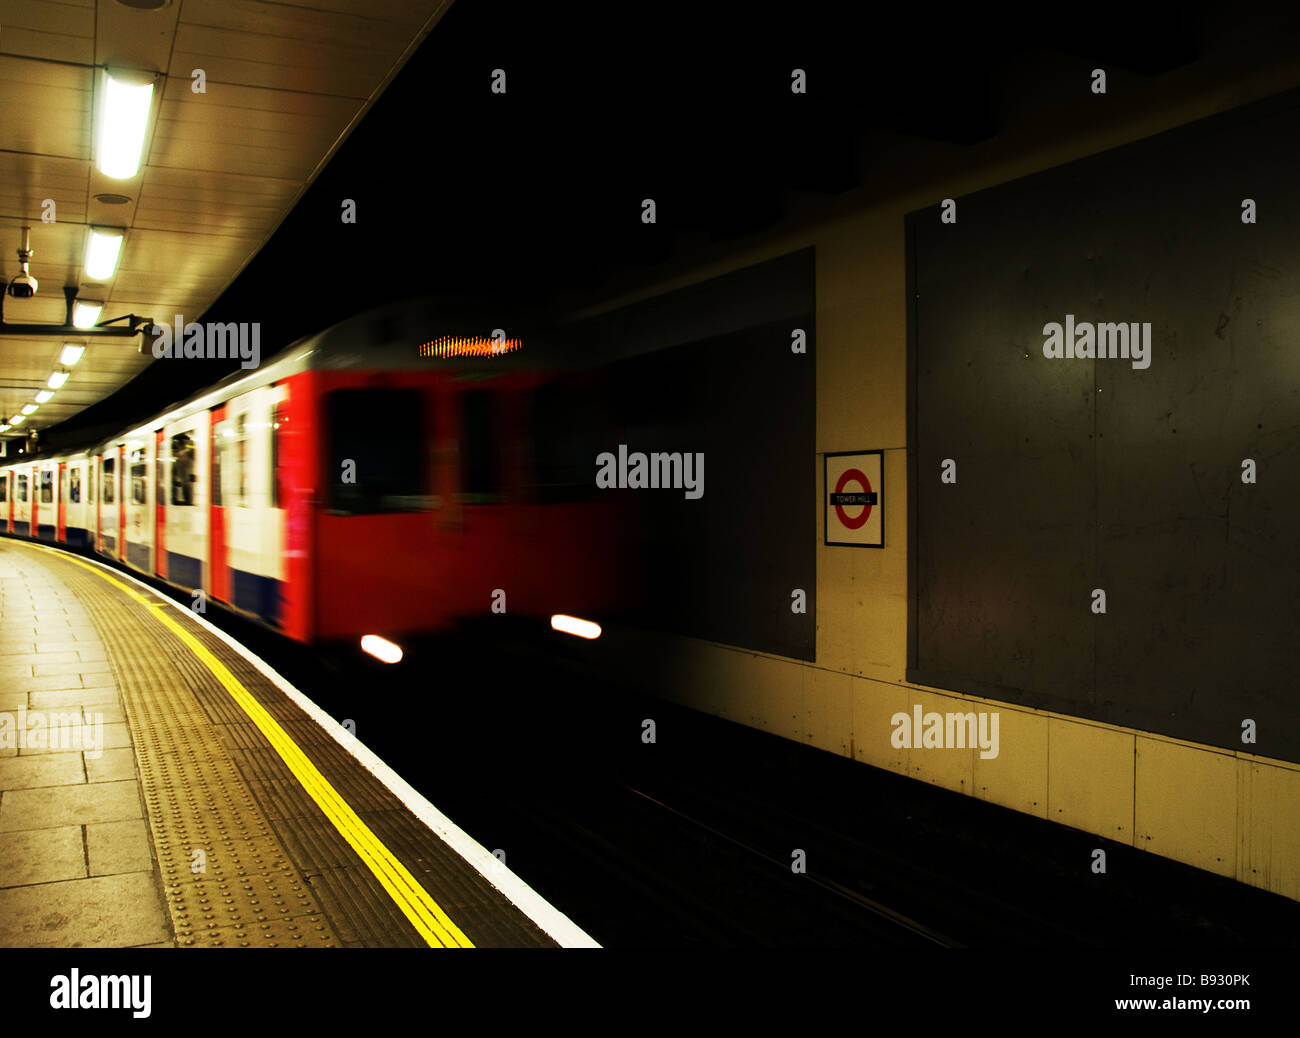 A London Tube train speeding into a station. - Stock Image